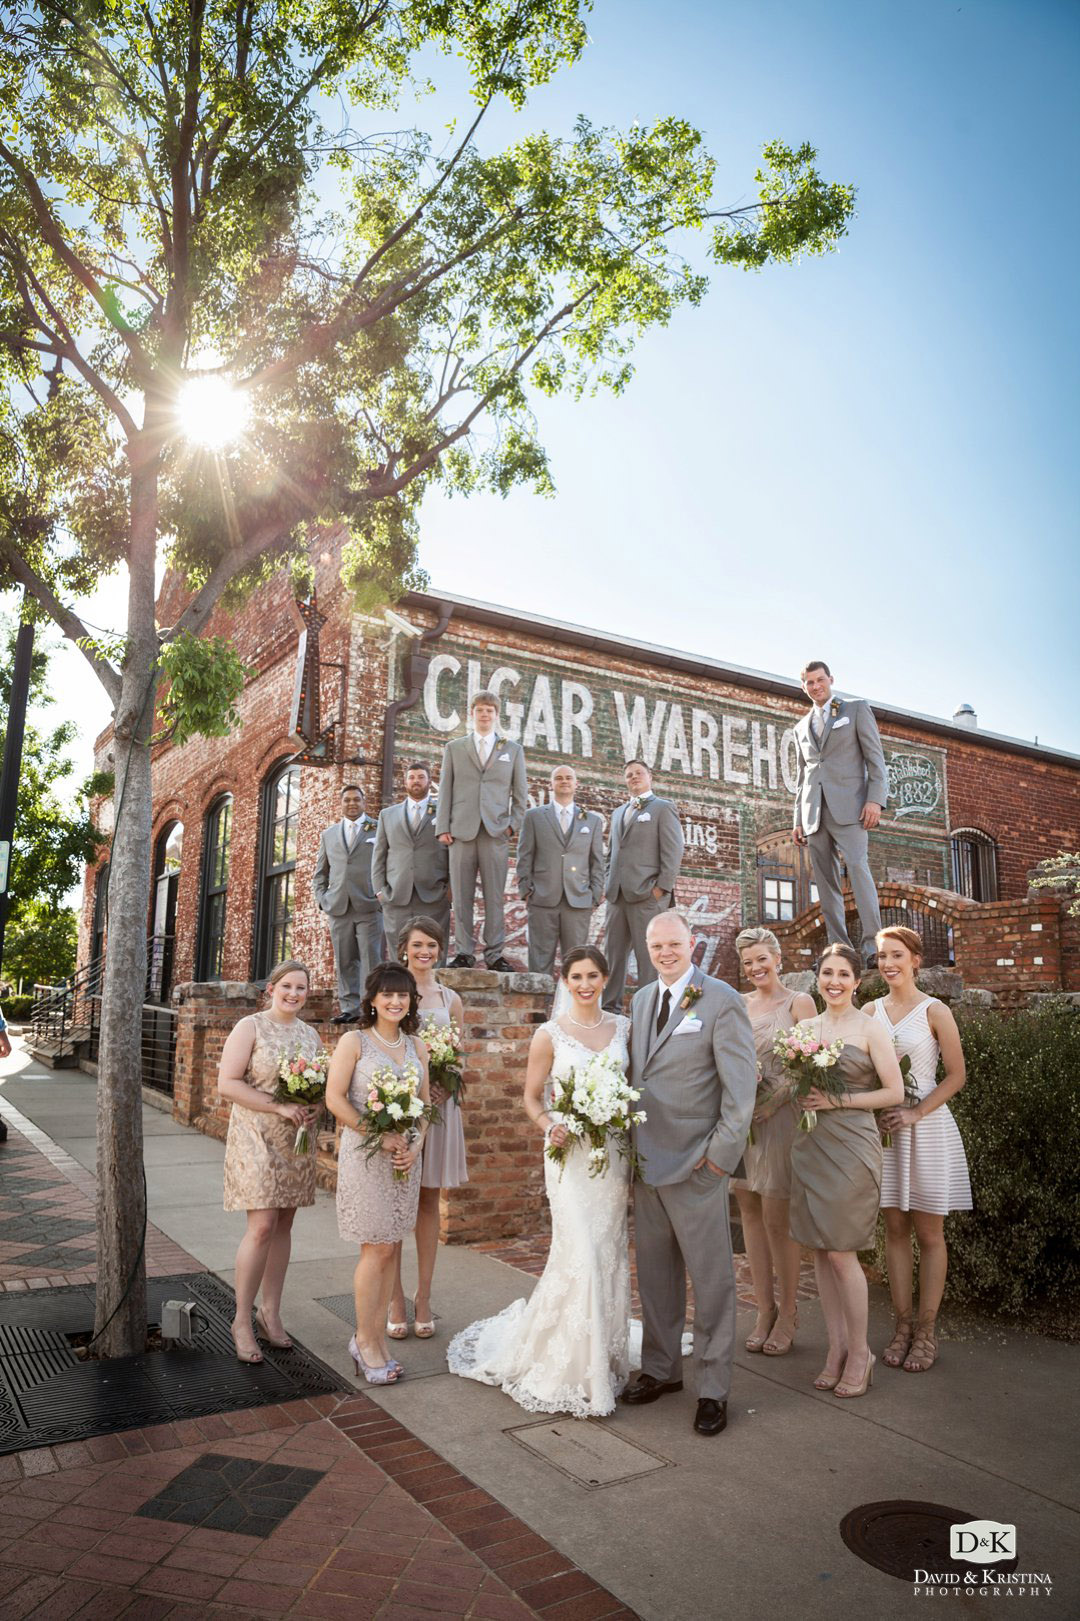 Old Cigar Warehouse wedding party photo